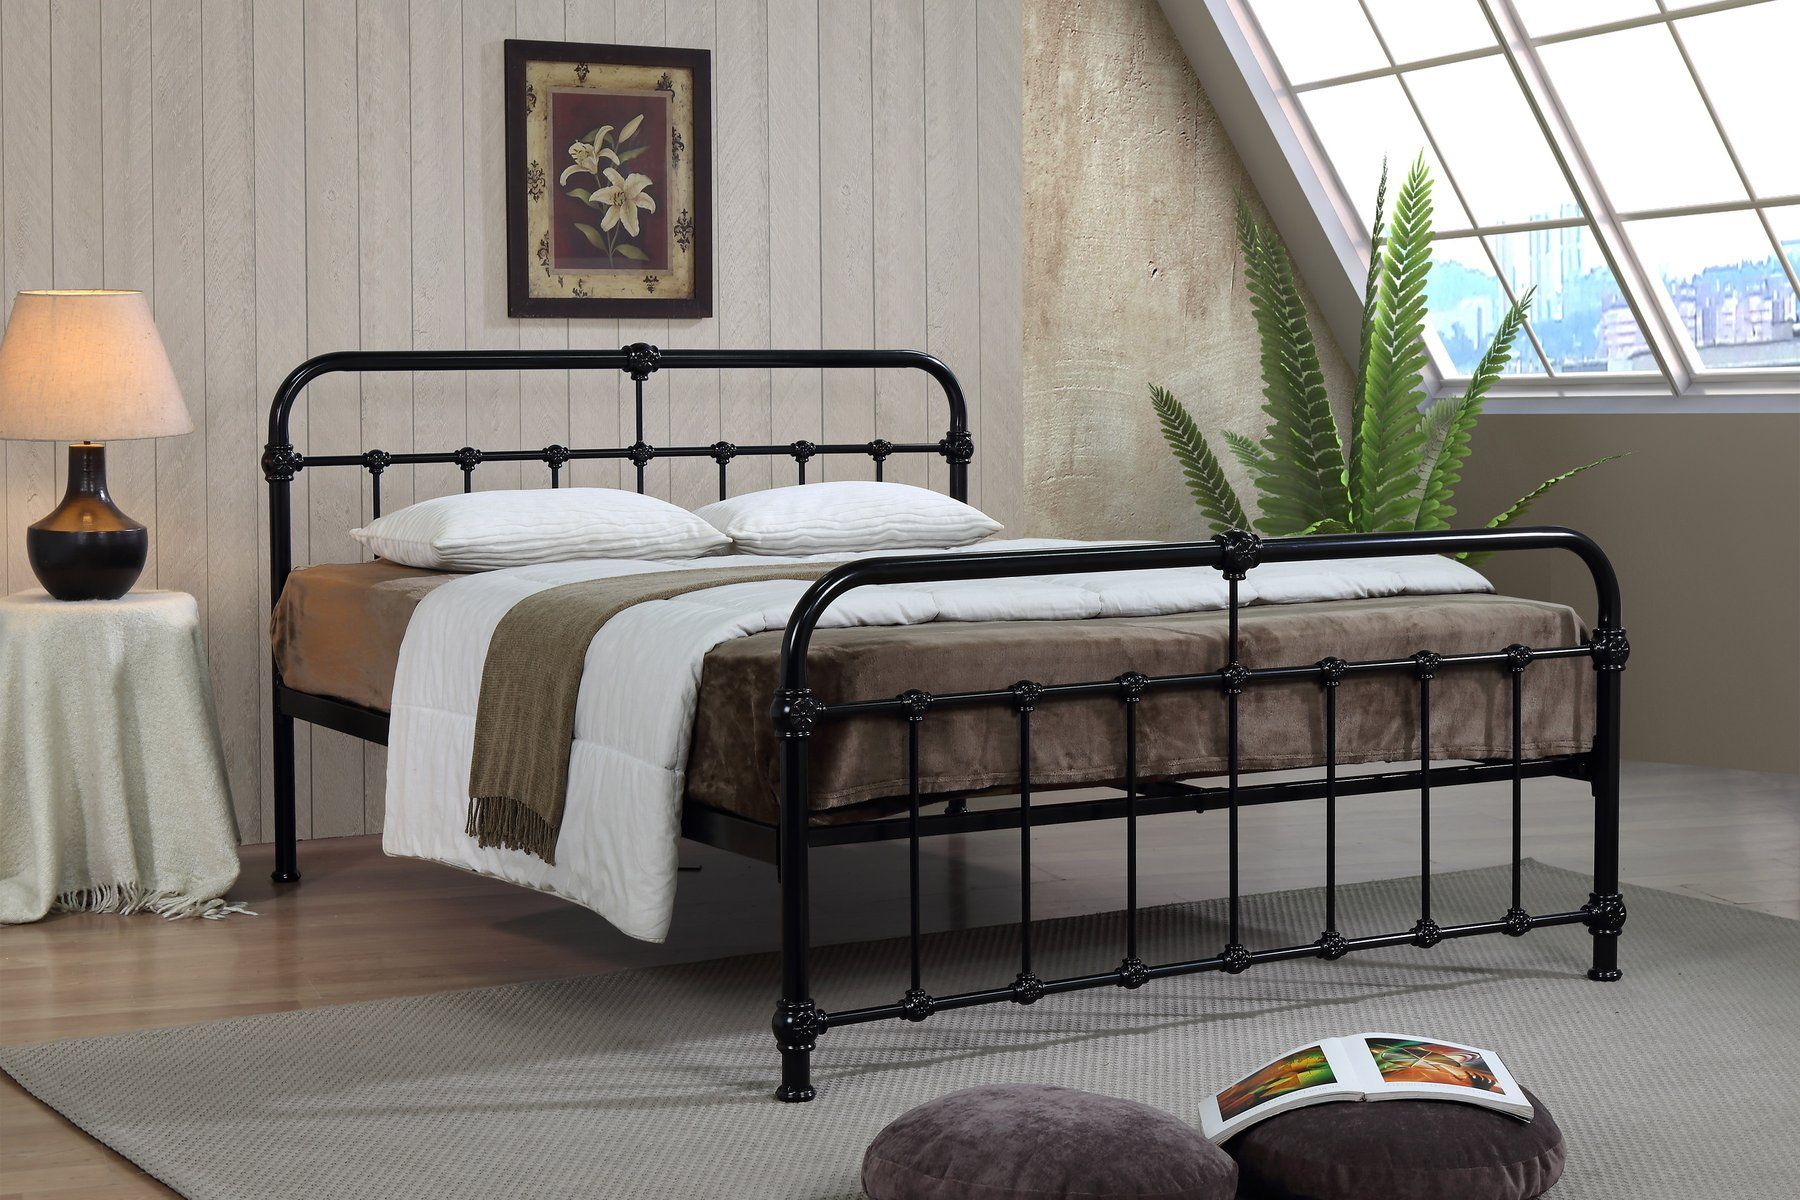 Malmo Hospital Style Black Metal Bed Bed frame, Bed